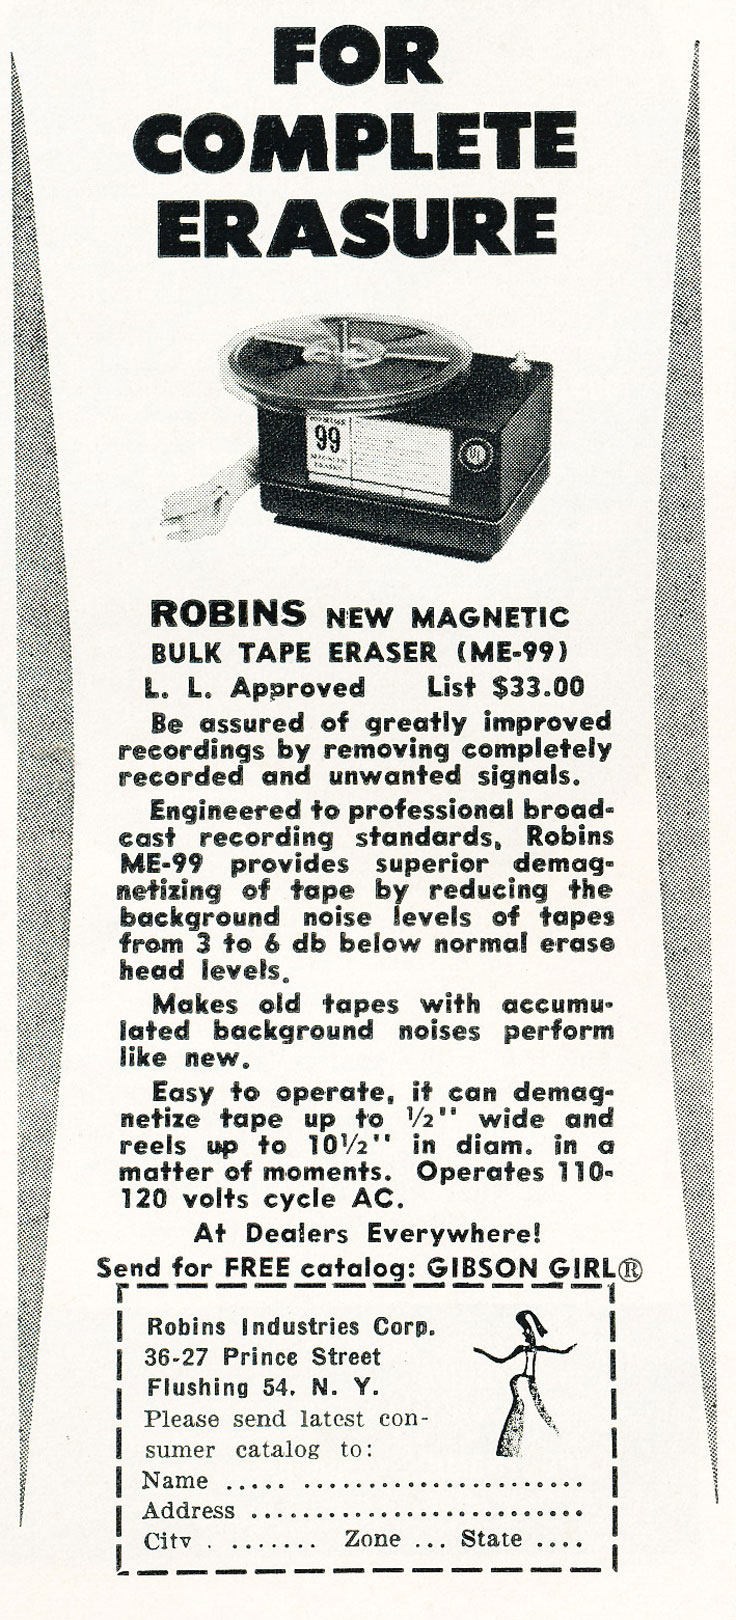 1961 ad for Robins tape recording accessories in Phantom Productions' vintage recording collection